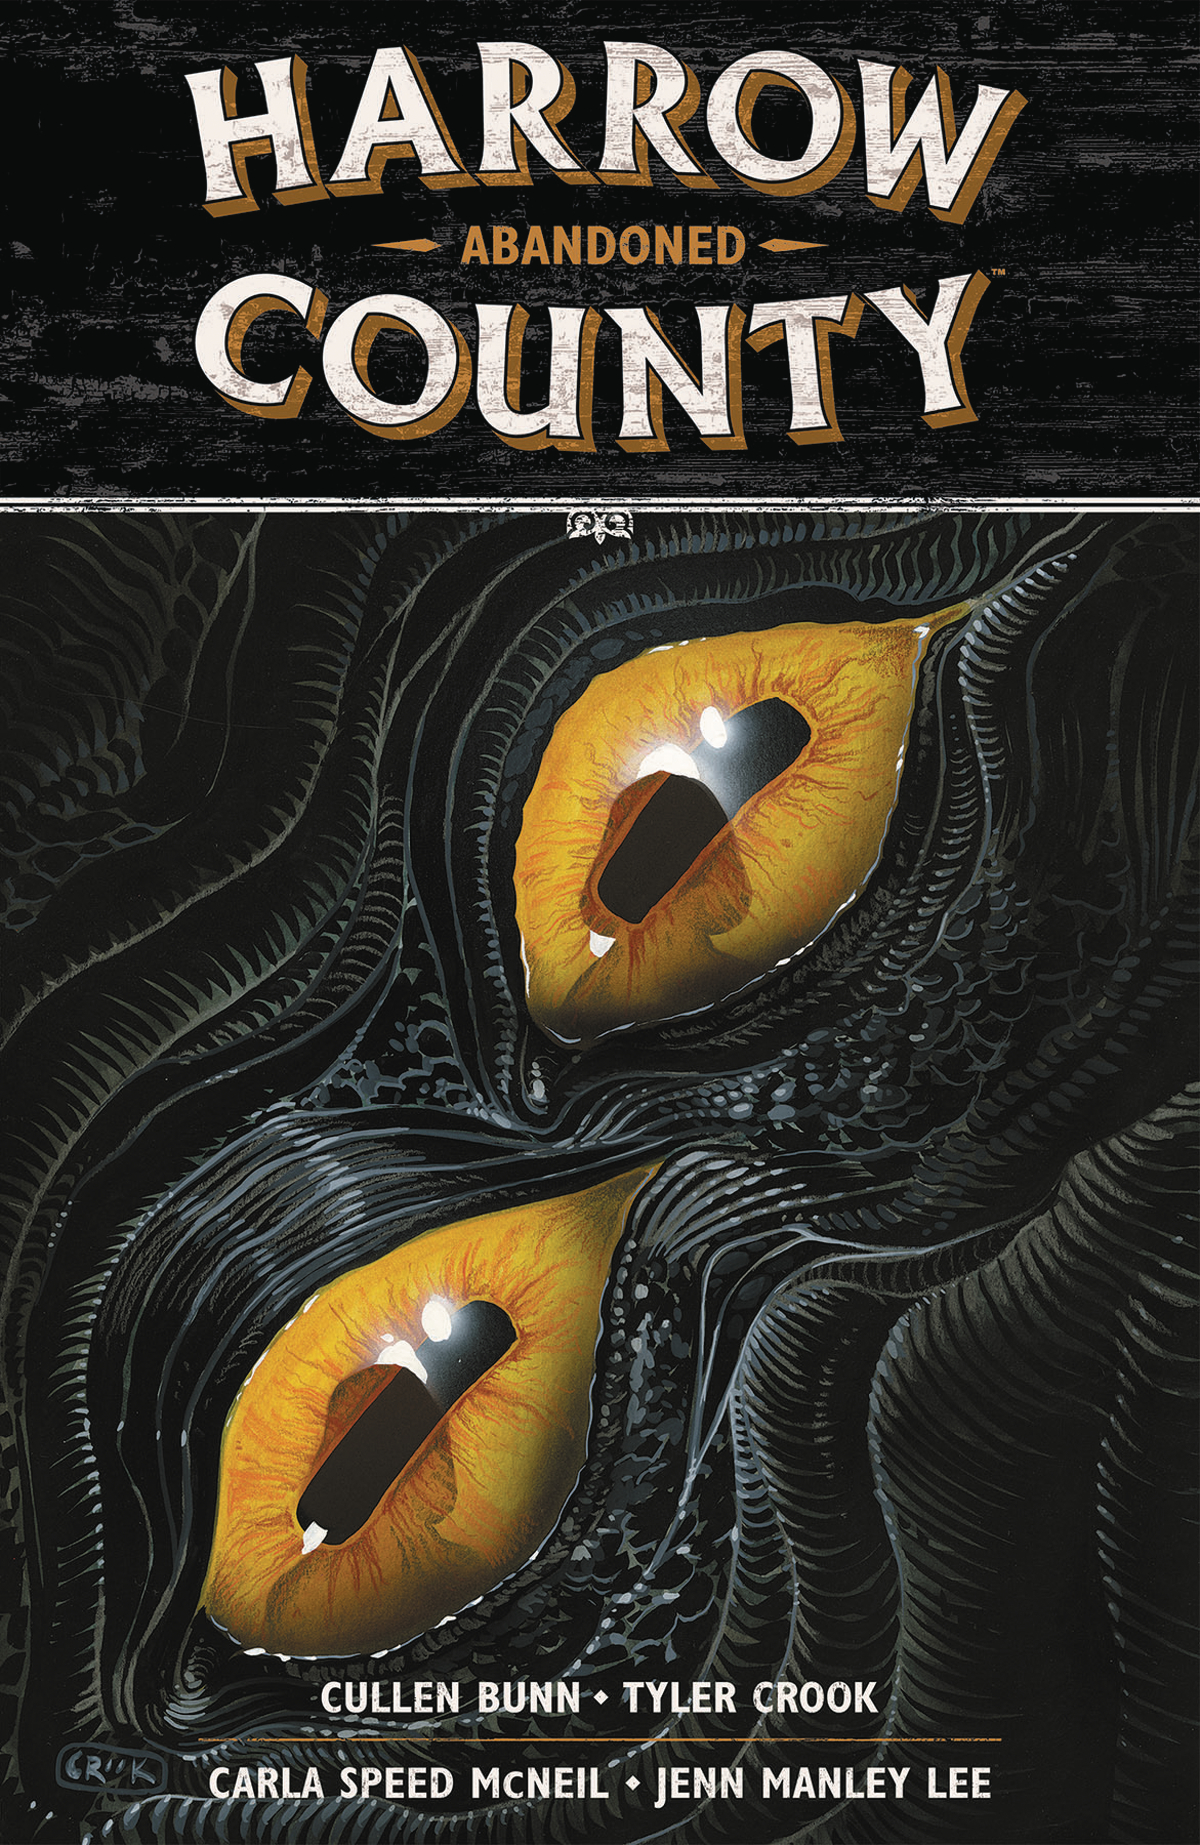 Harrow County Vol. 5: Abandoned TP Reviews